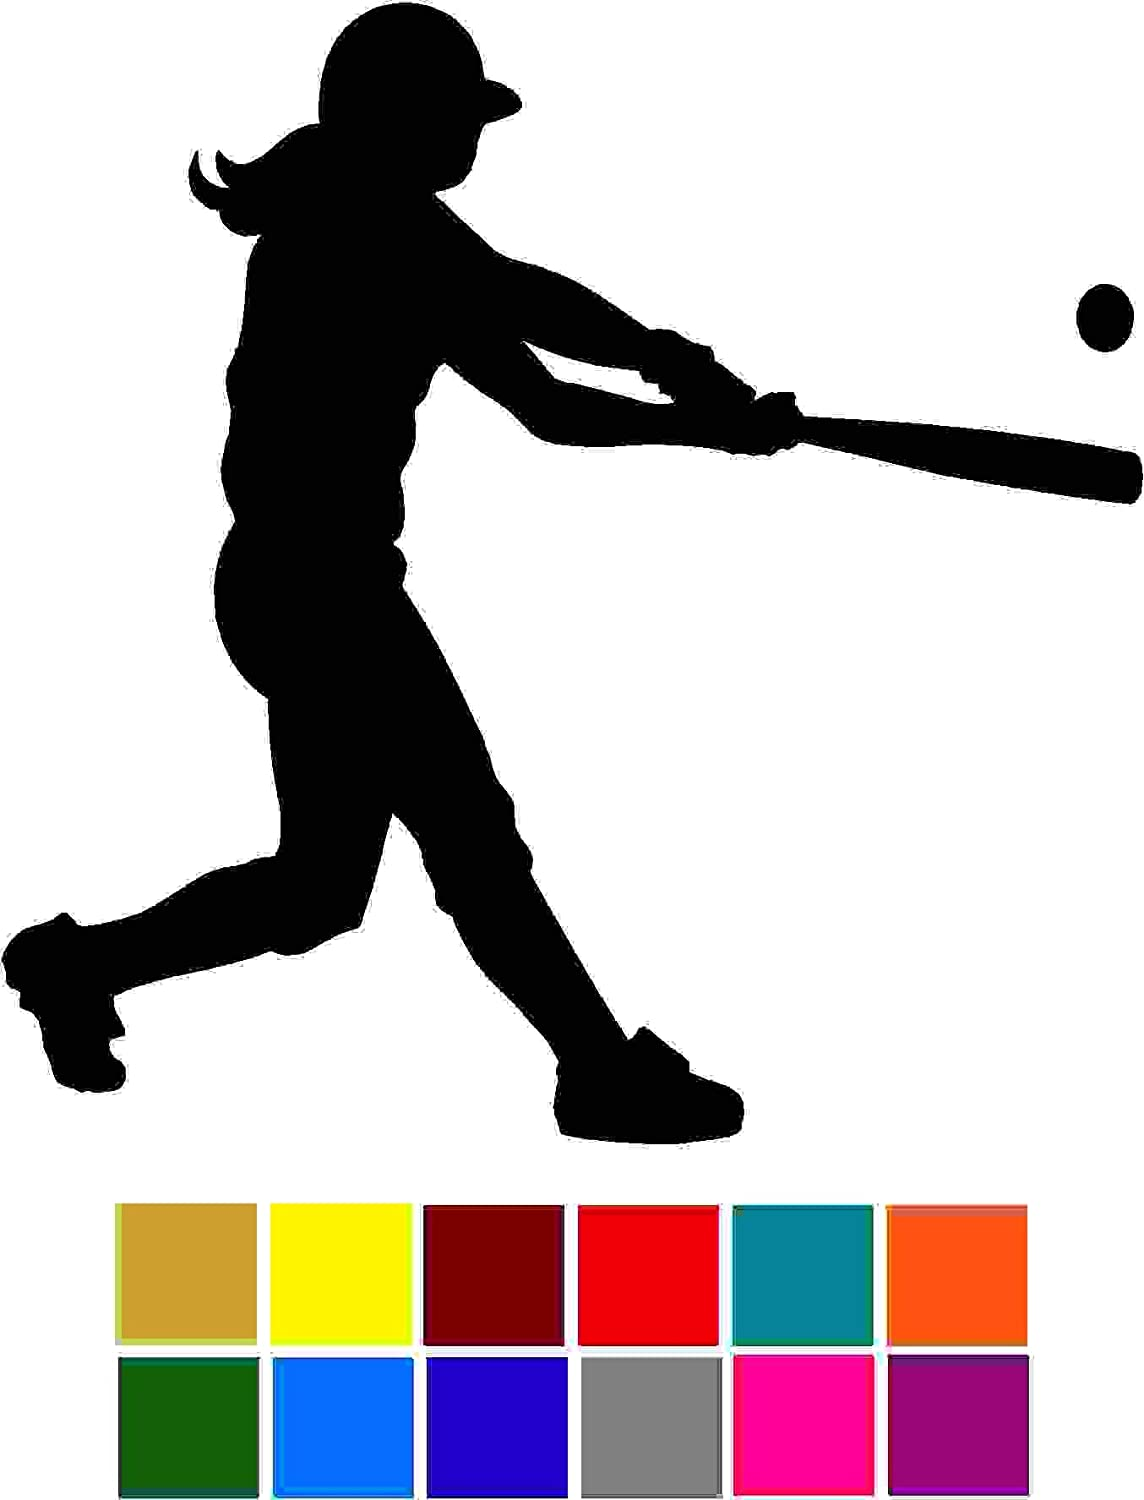 Sports Softball Batter Girl Decal Sticker Vinyl Car Window Tumblers Wall Laptops Cellphones Phones Tablets Ipads Helmets Motorcycles Computer Towers V and T Gifts